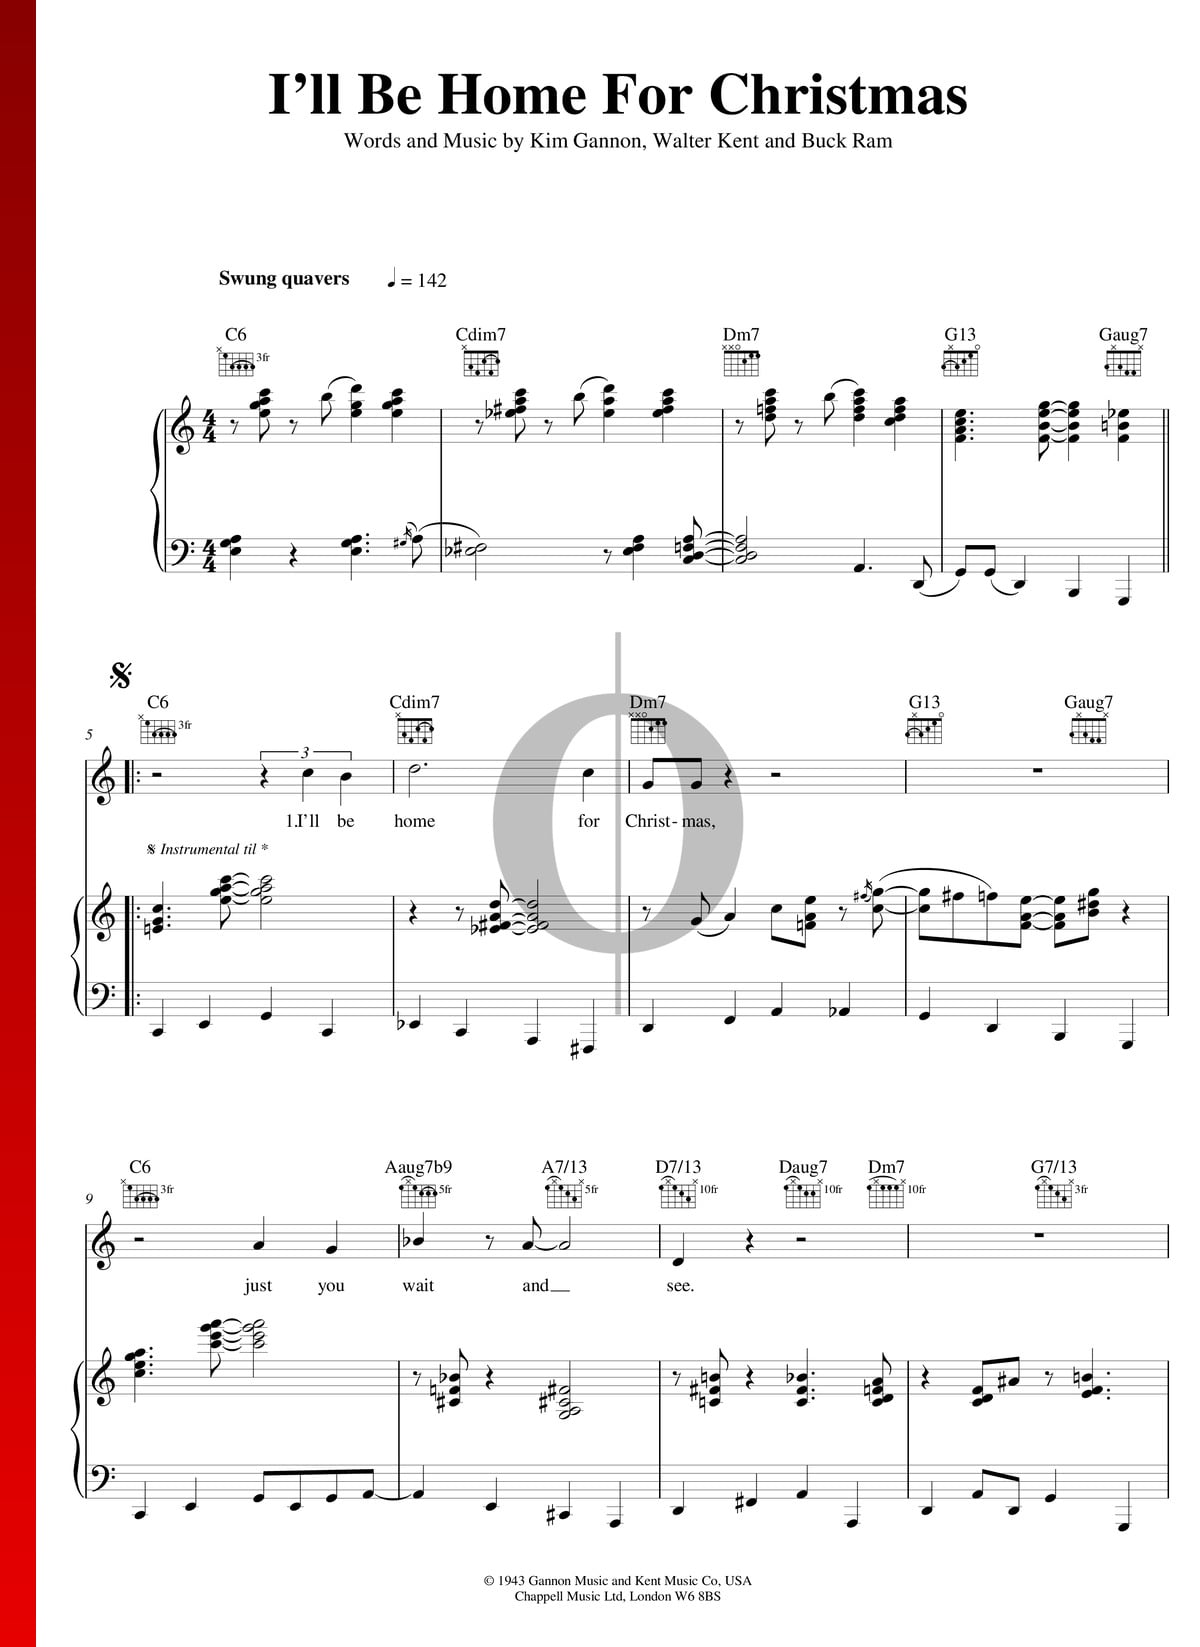 Bing Crosby Ill Be Home For Christmas.I Ll Be Home For Christmas Sheet Music Piano Voice